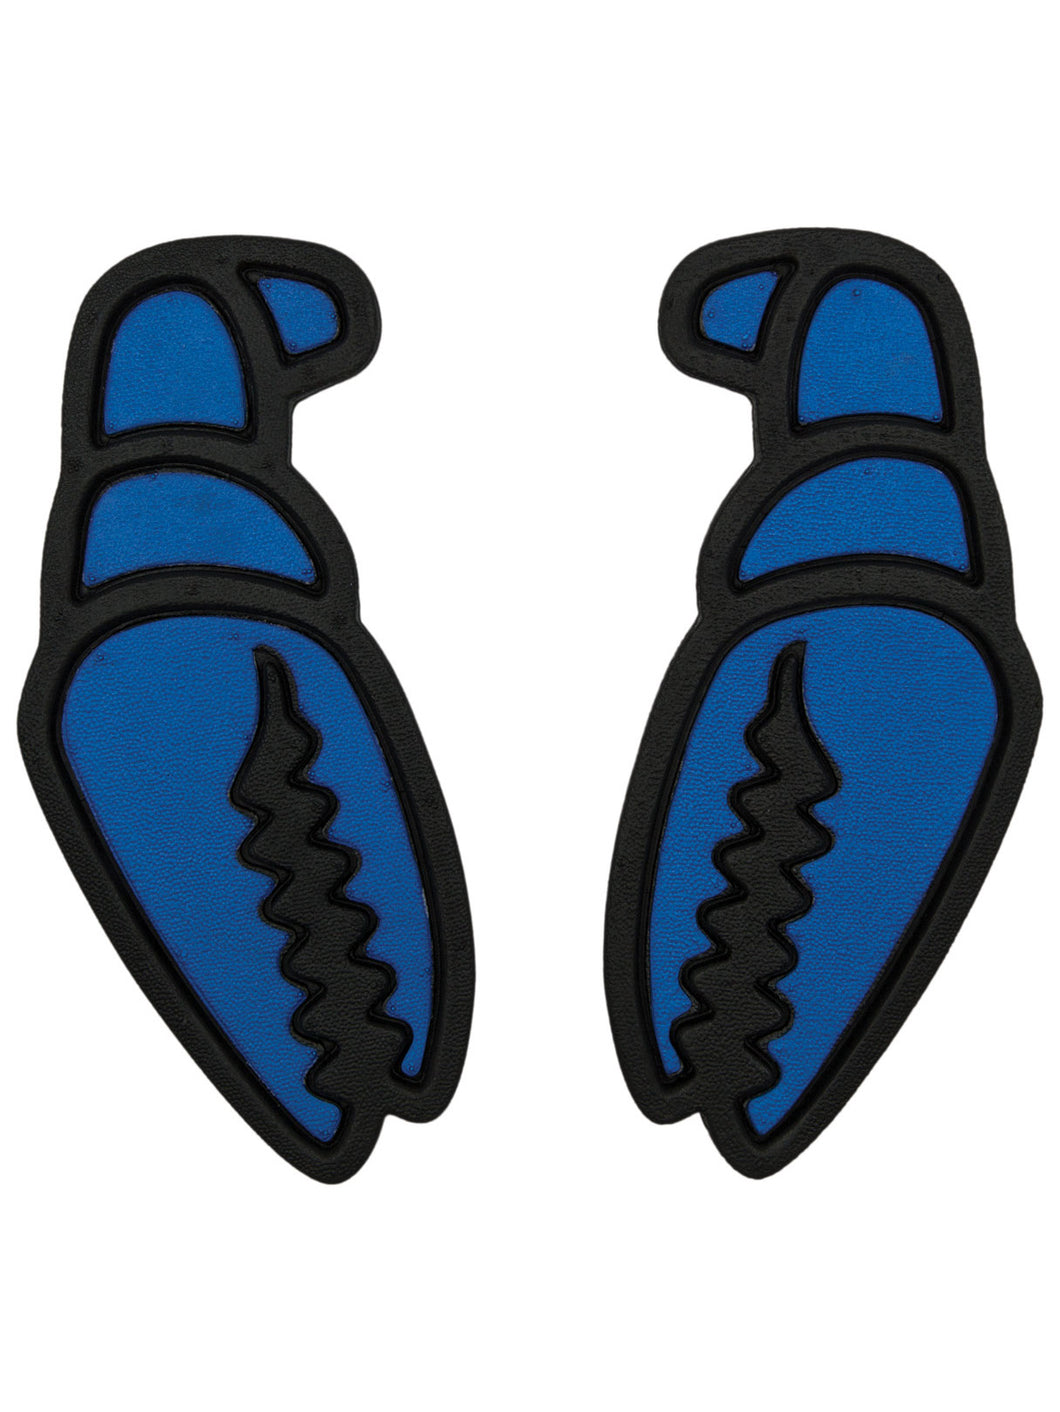 Crab Grab Mega Claws black/blue